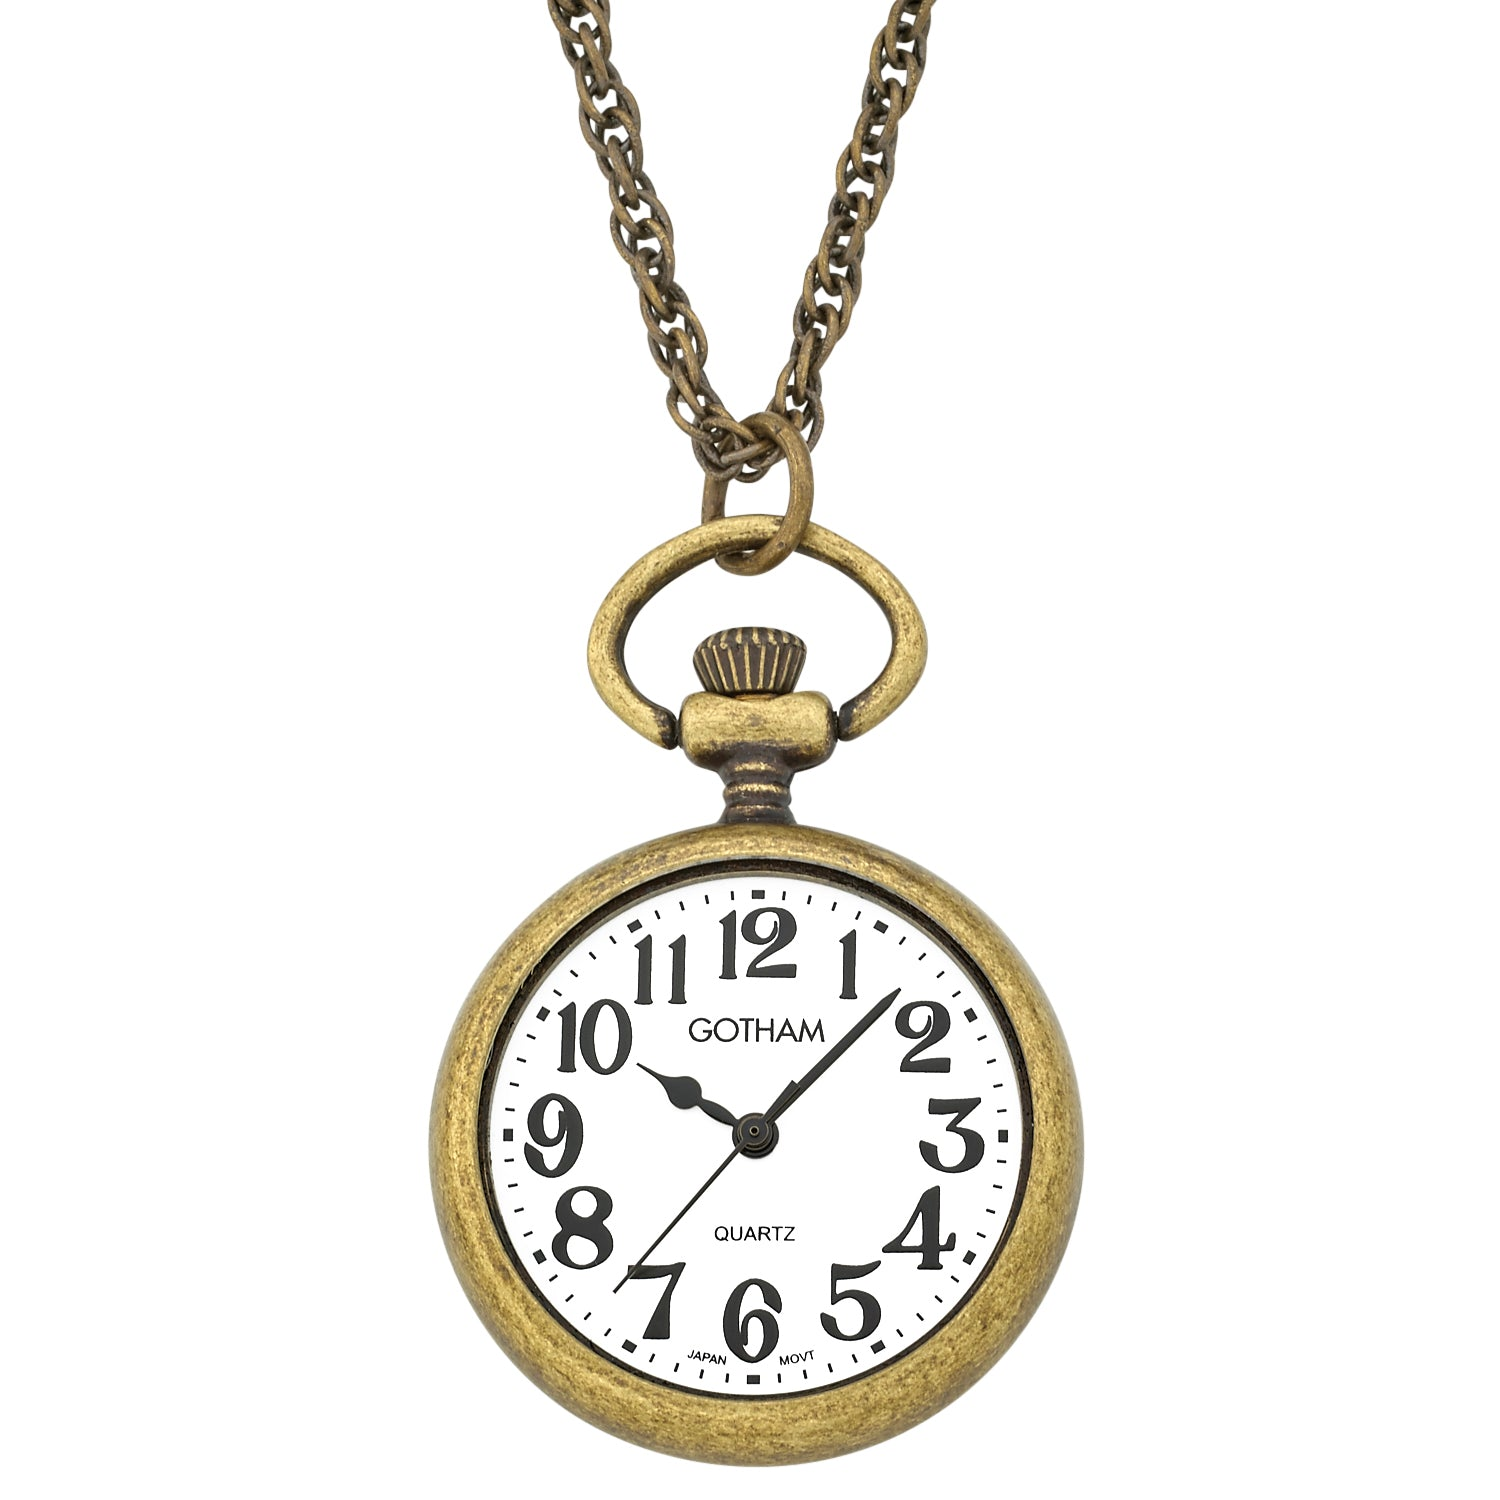 Gotham womens antique gold tone open face pendant watch with chain gotham womens antique gold tone open face pendant watch with chain gwc14136a mozeypictures Images